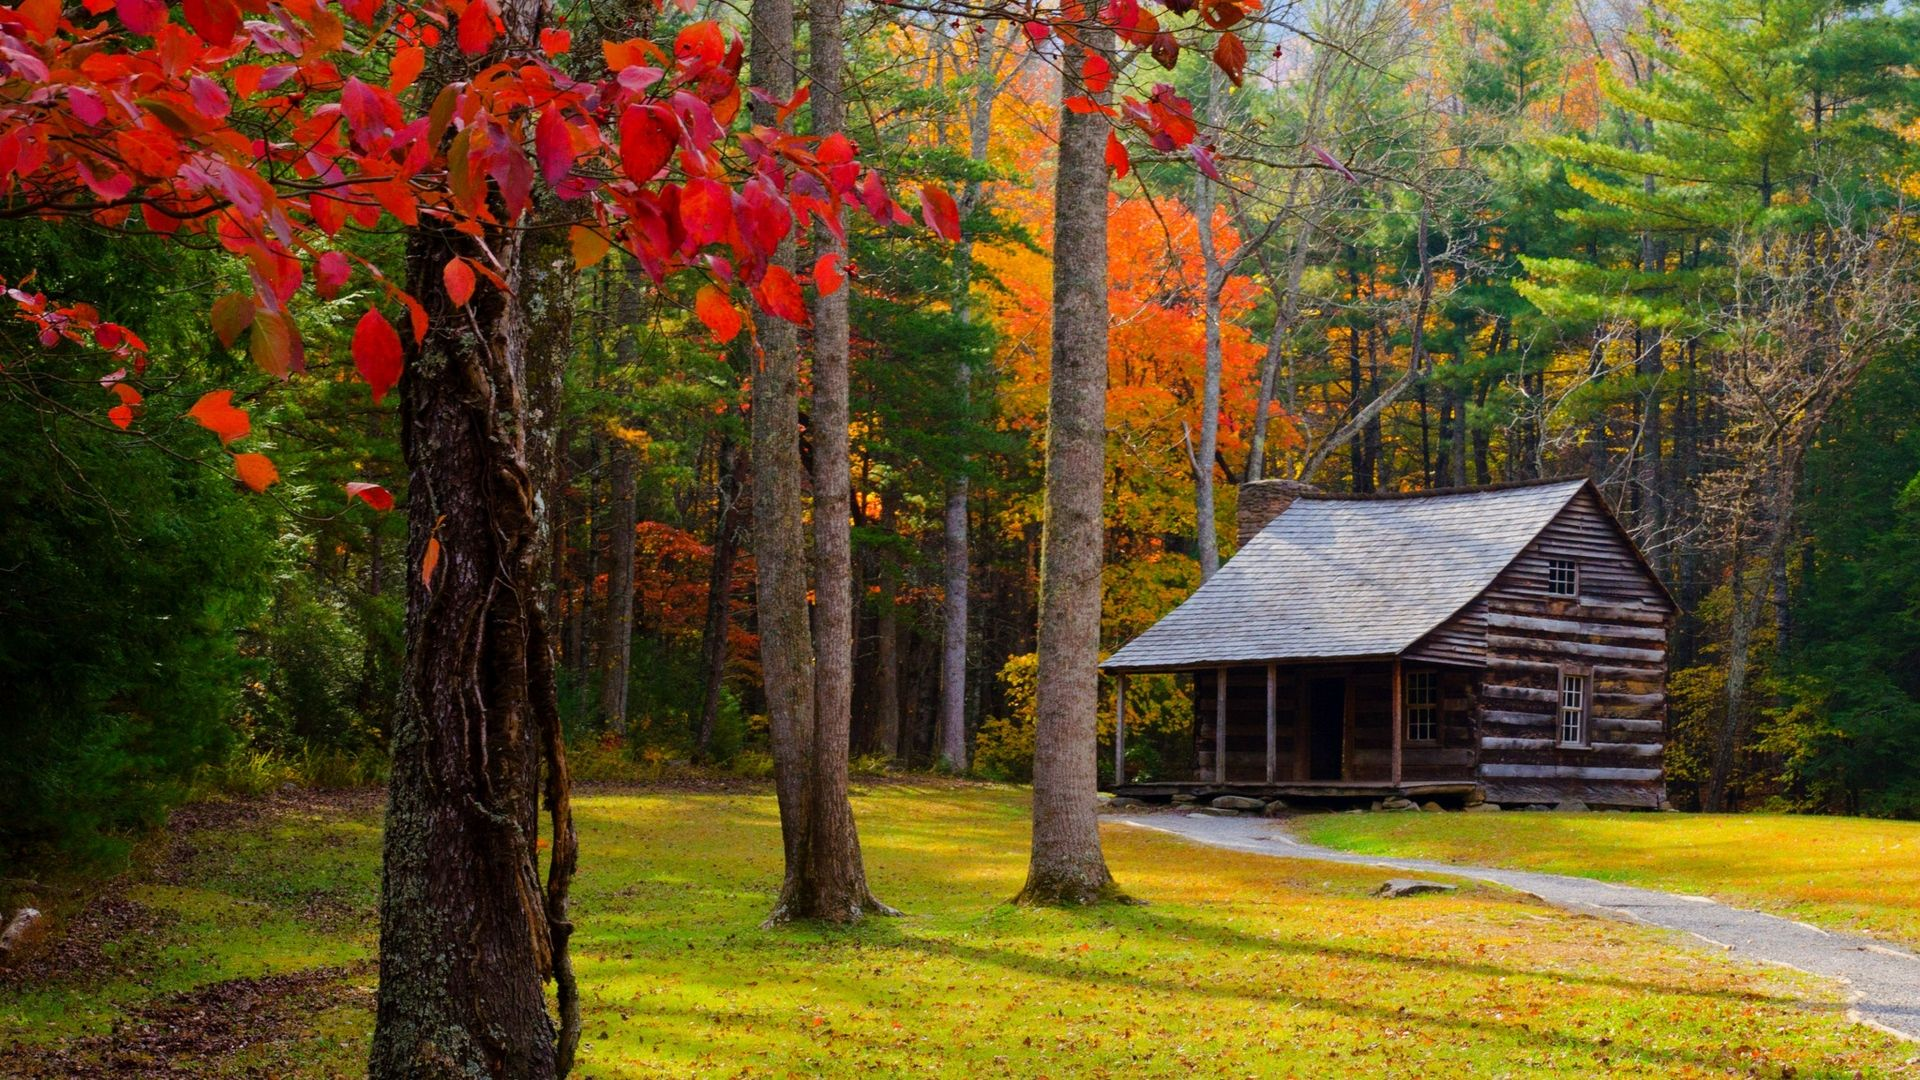 Download Wallpaper 1920x1080 Autumn, Trees, Forest